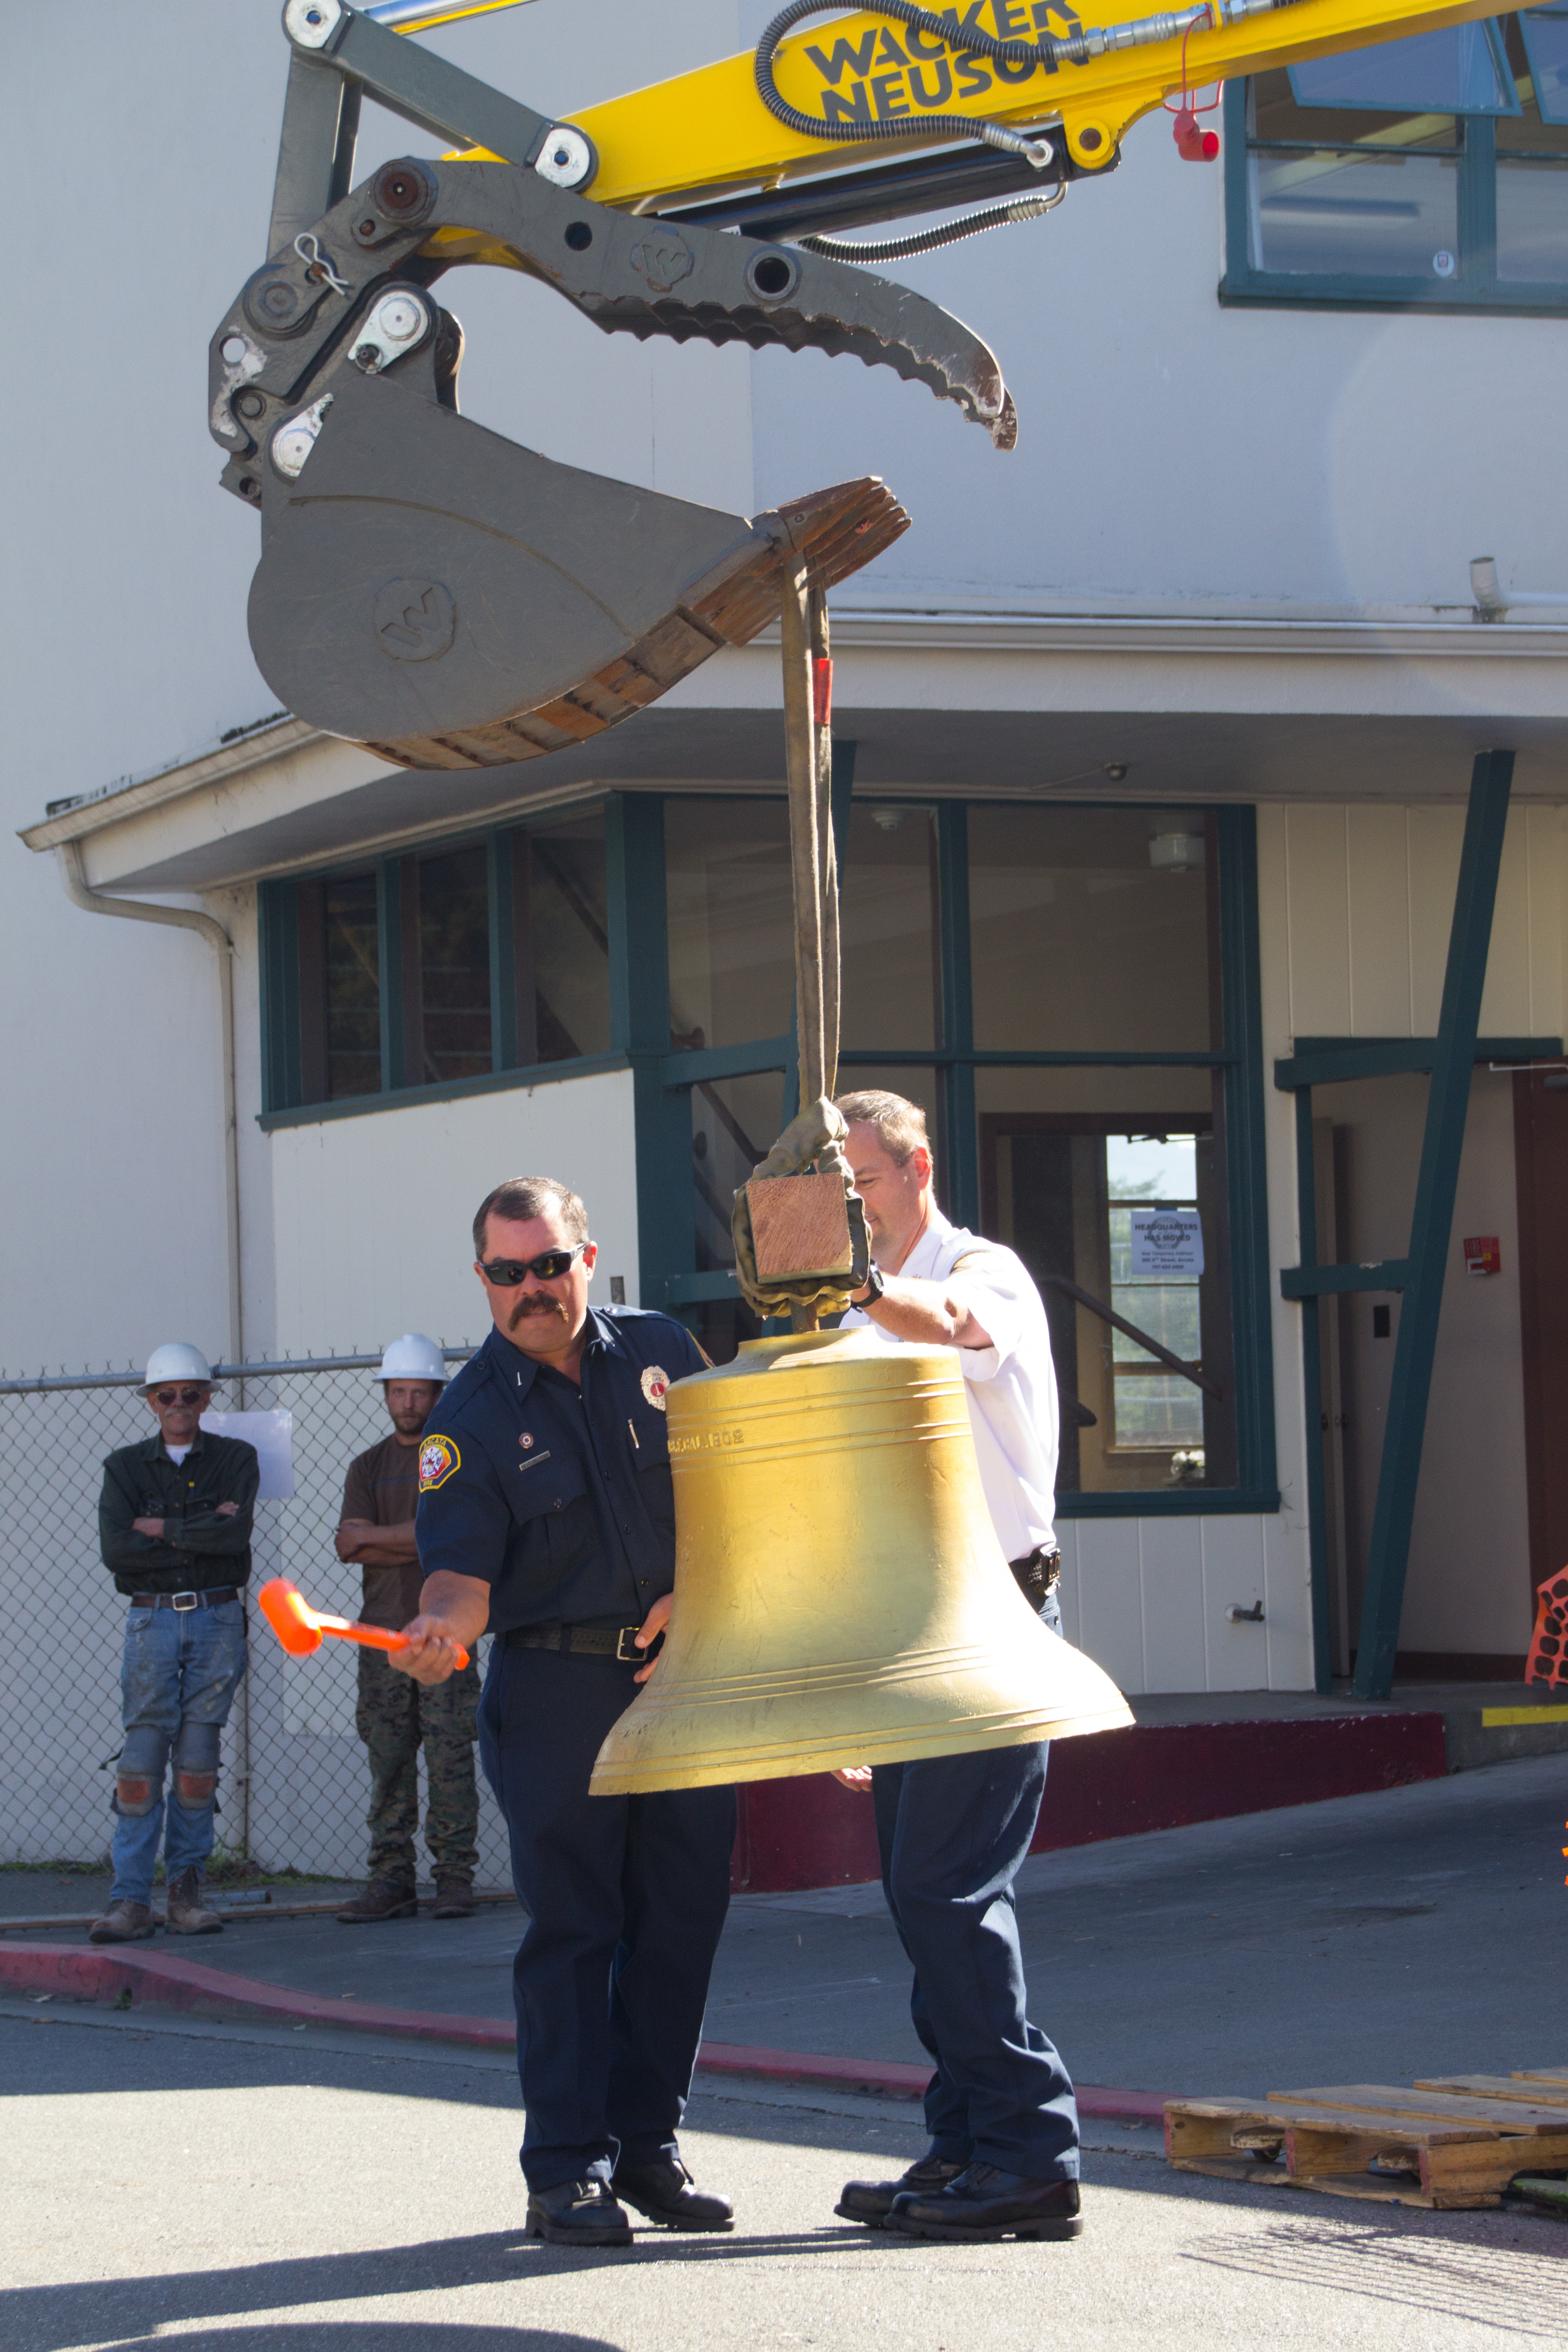 Kevin rings bell_MG_5085.jpg